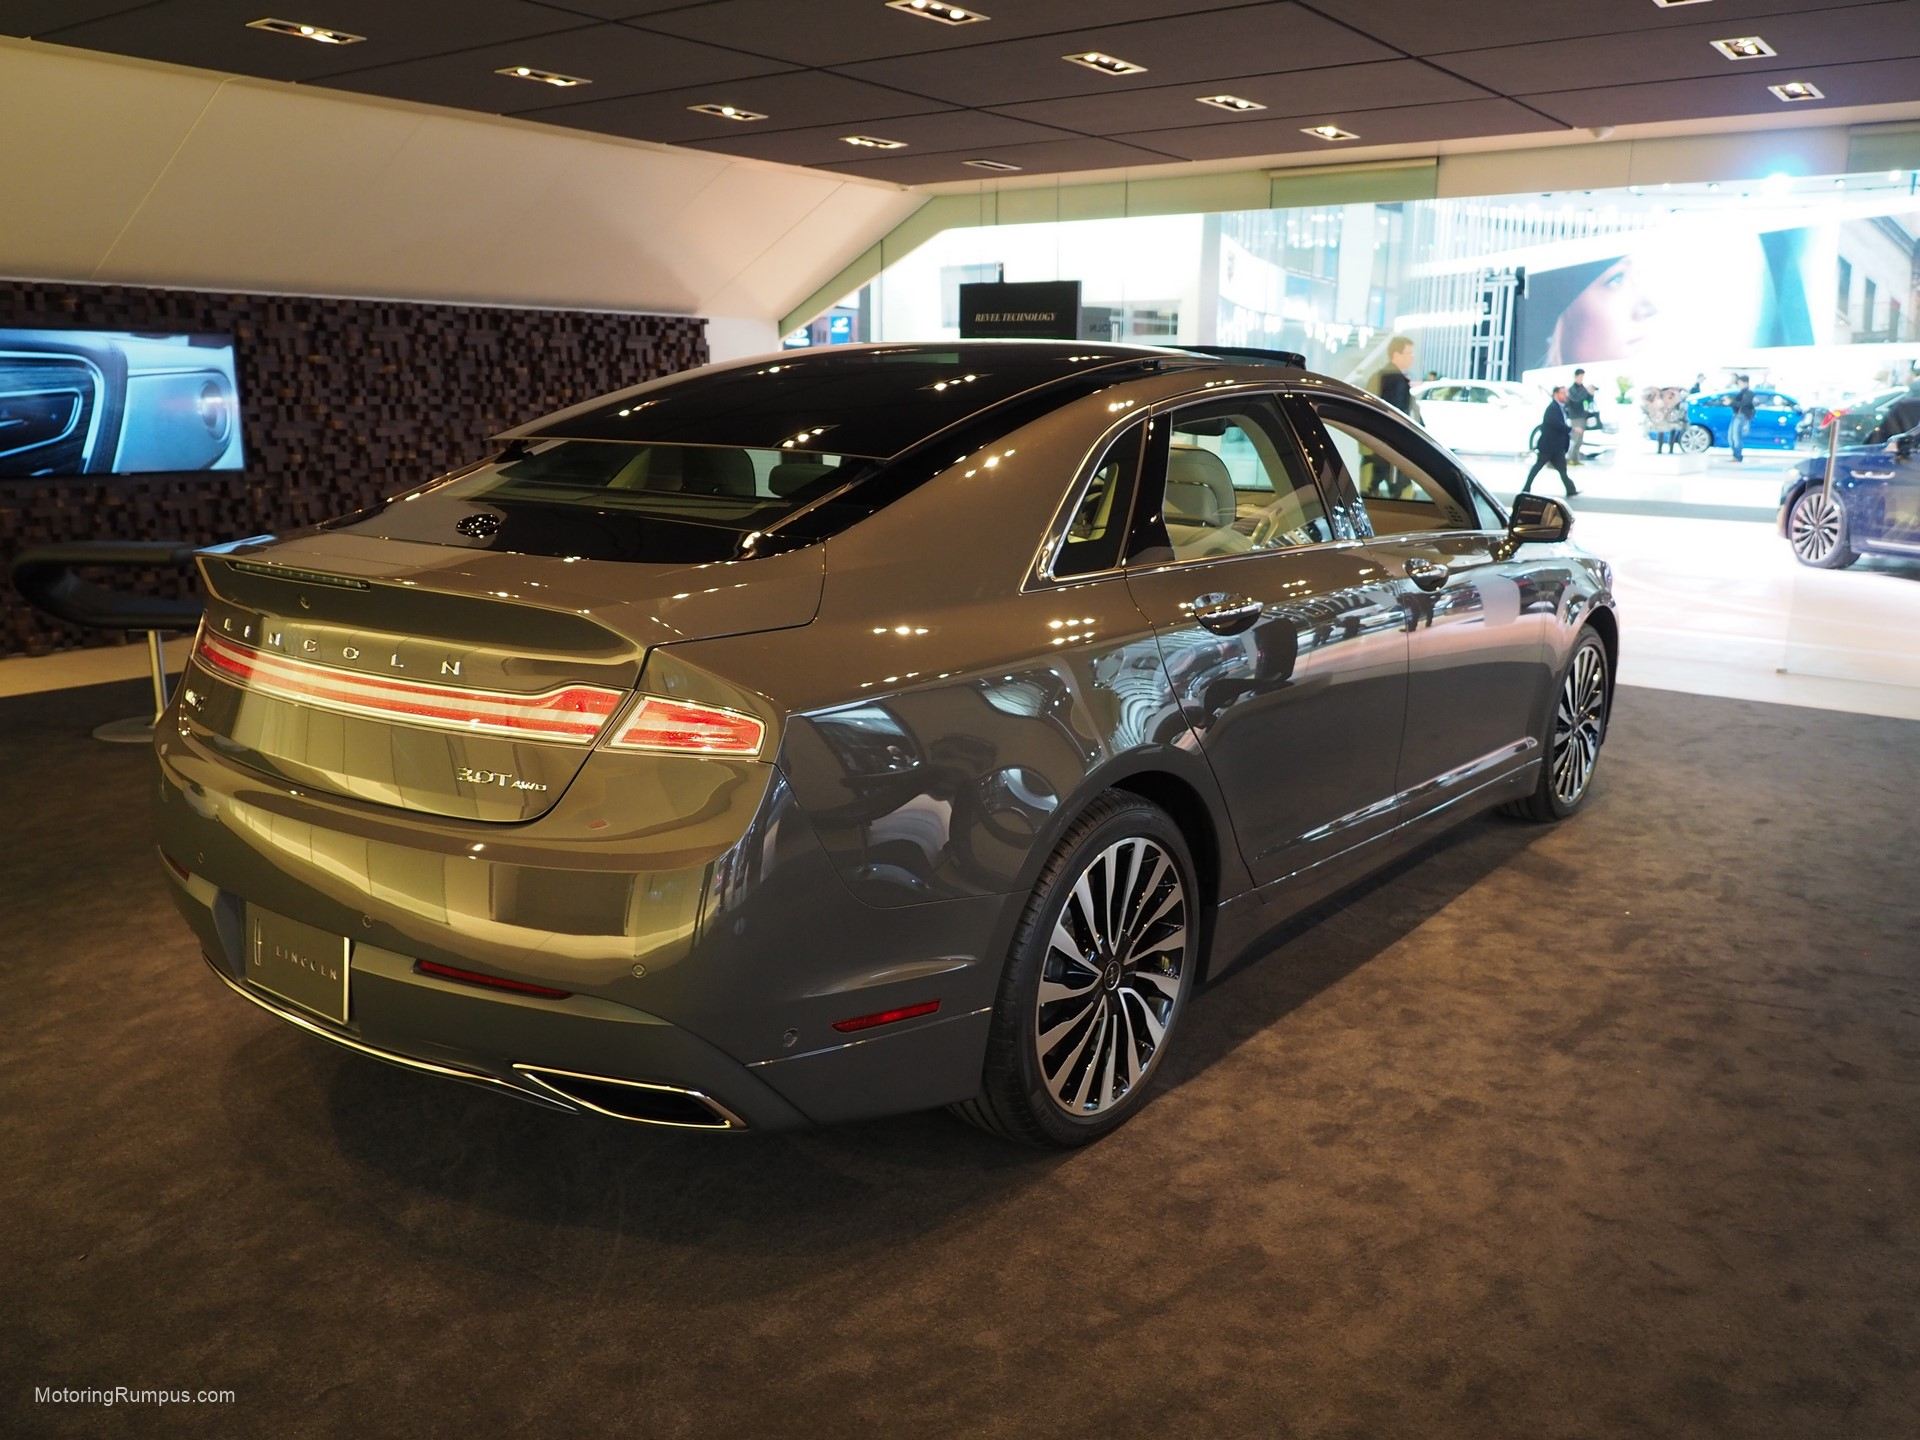 2016 naias 2017 lincoln mkz motoring rumpus. Black Bedroom Furniture Sets. Home Design Ideas